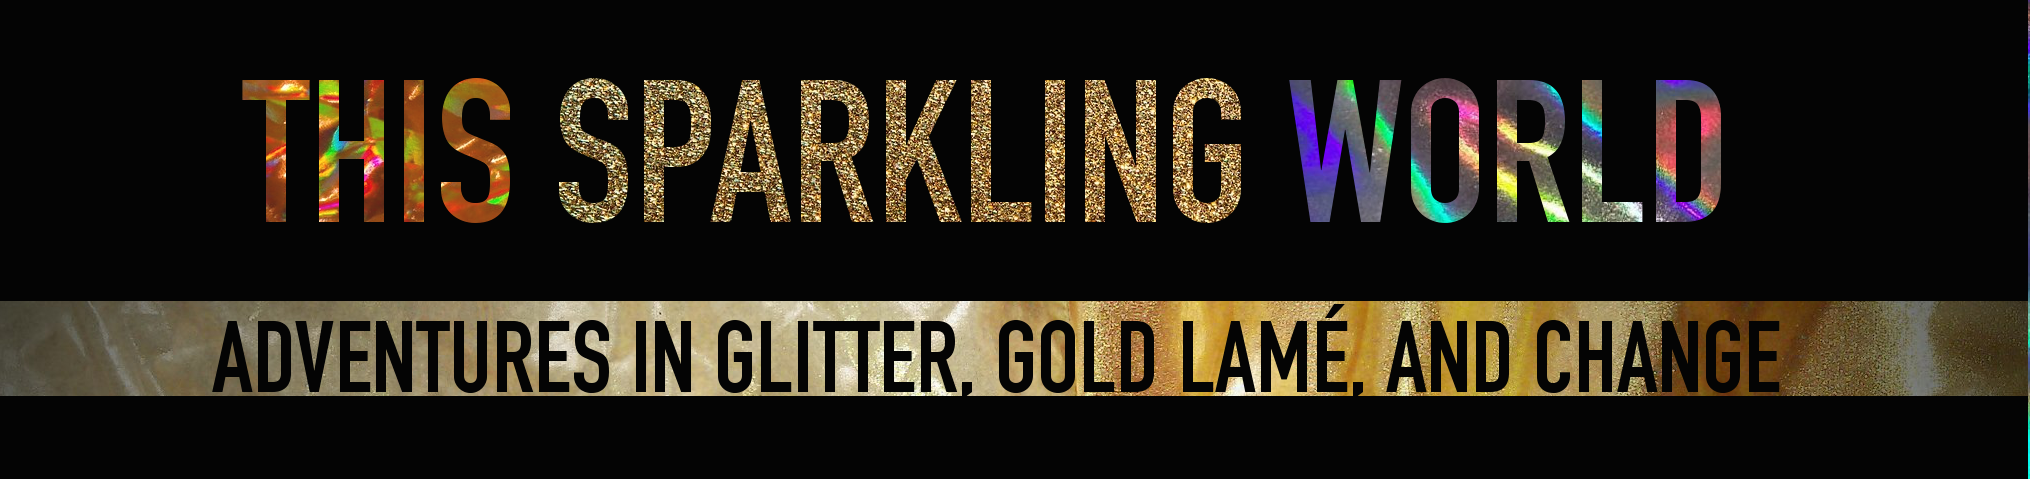 THIS SPARKLING WORLD: ADVENTURES IN GLITTER, GOLD LAMÉ, AND CHANGE